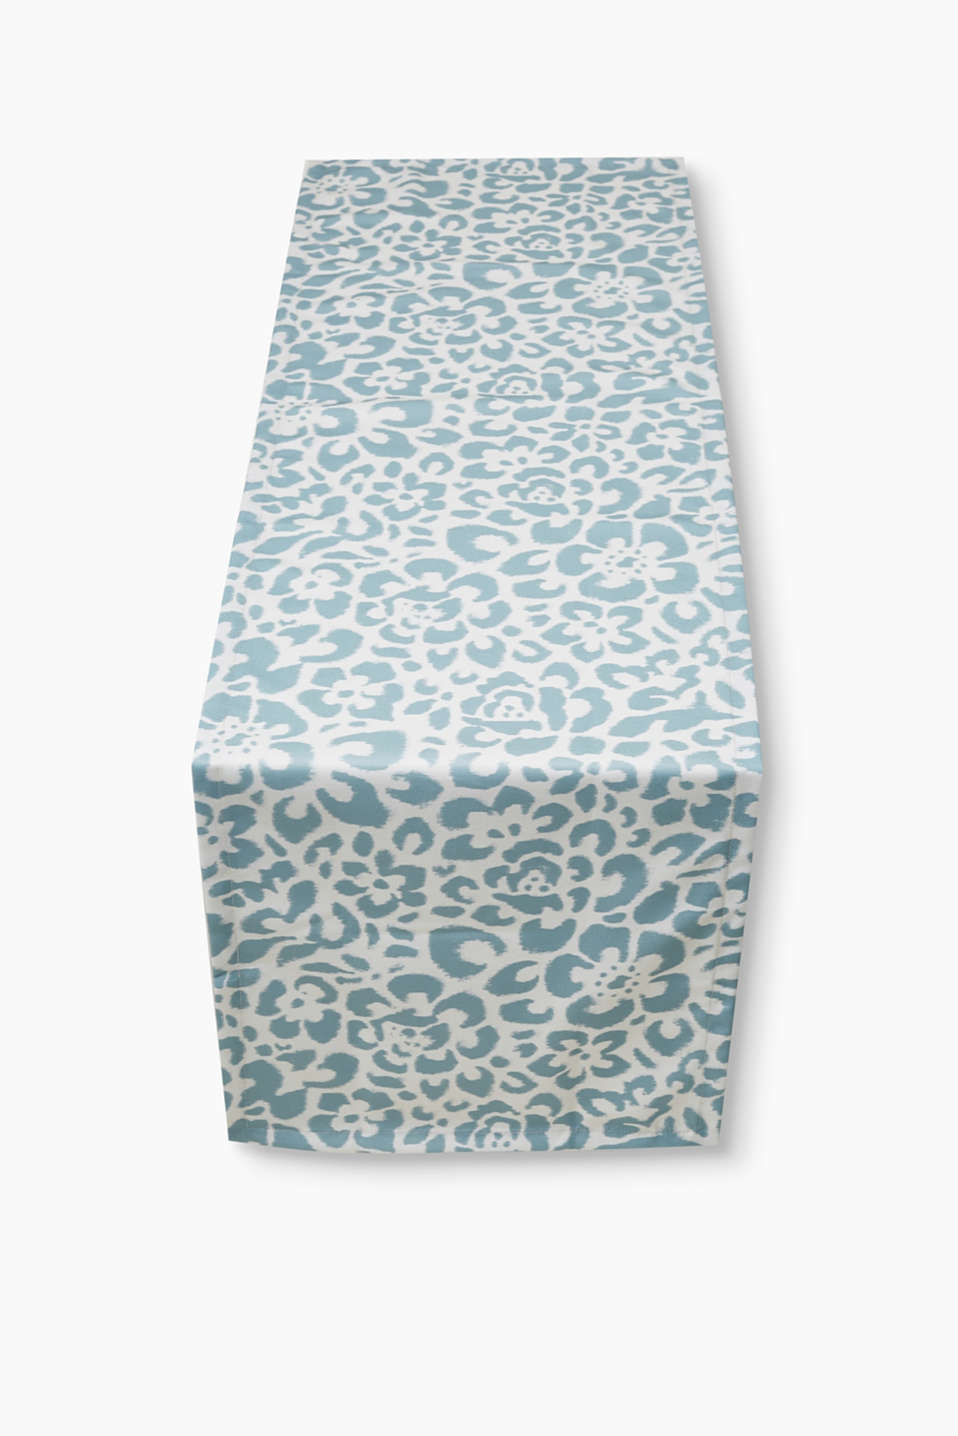 Table runner with a modern floral pattern and mitred corners, made of textured fabric